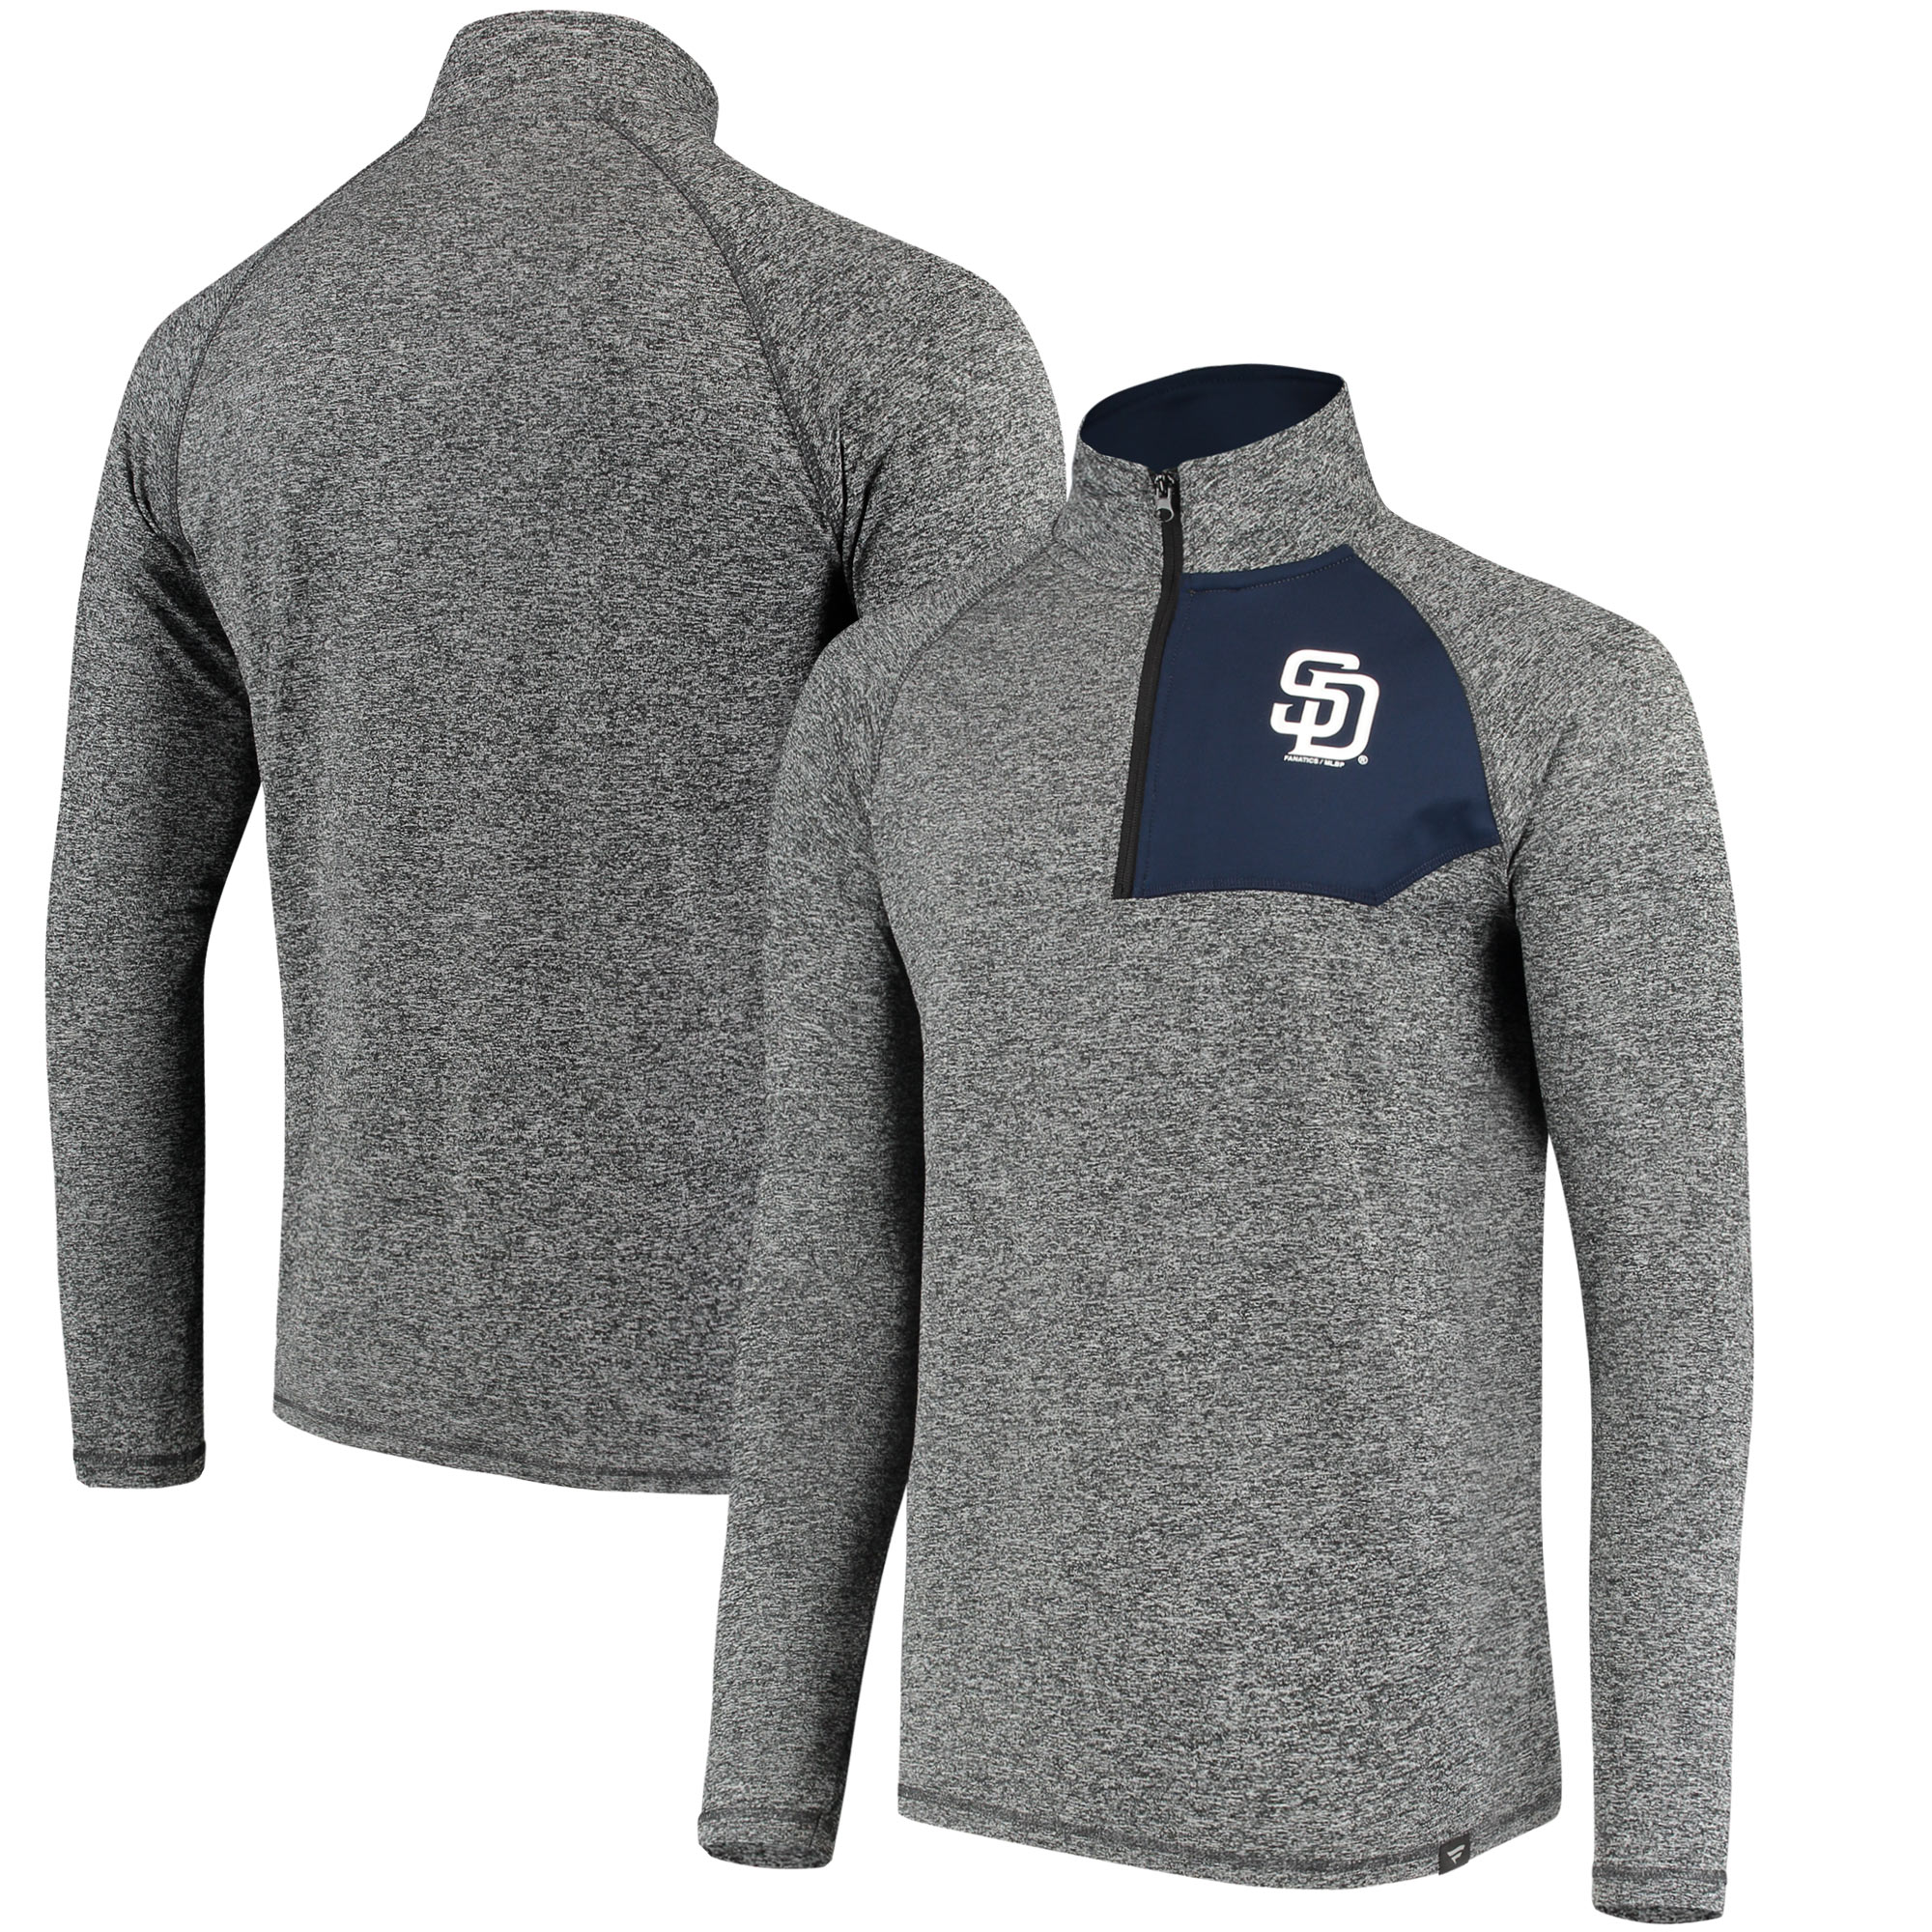 San Diego Padres Fanatics Branded Static Quarter-Zip Pullover Jacket - Heathered Gray